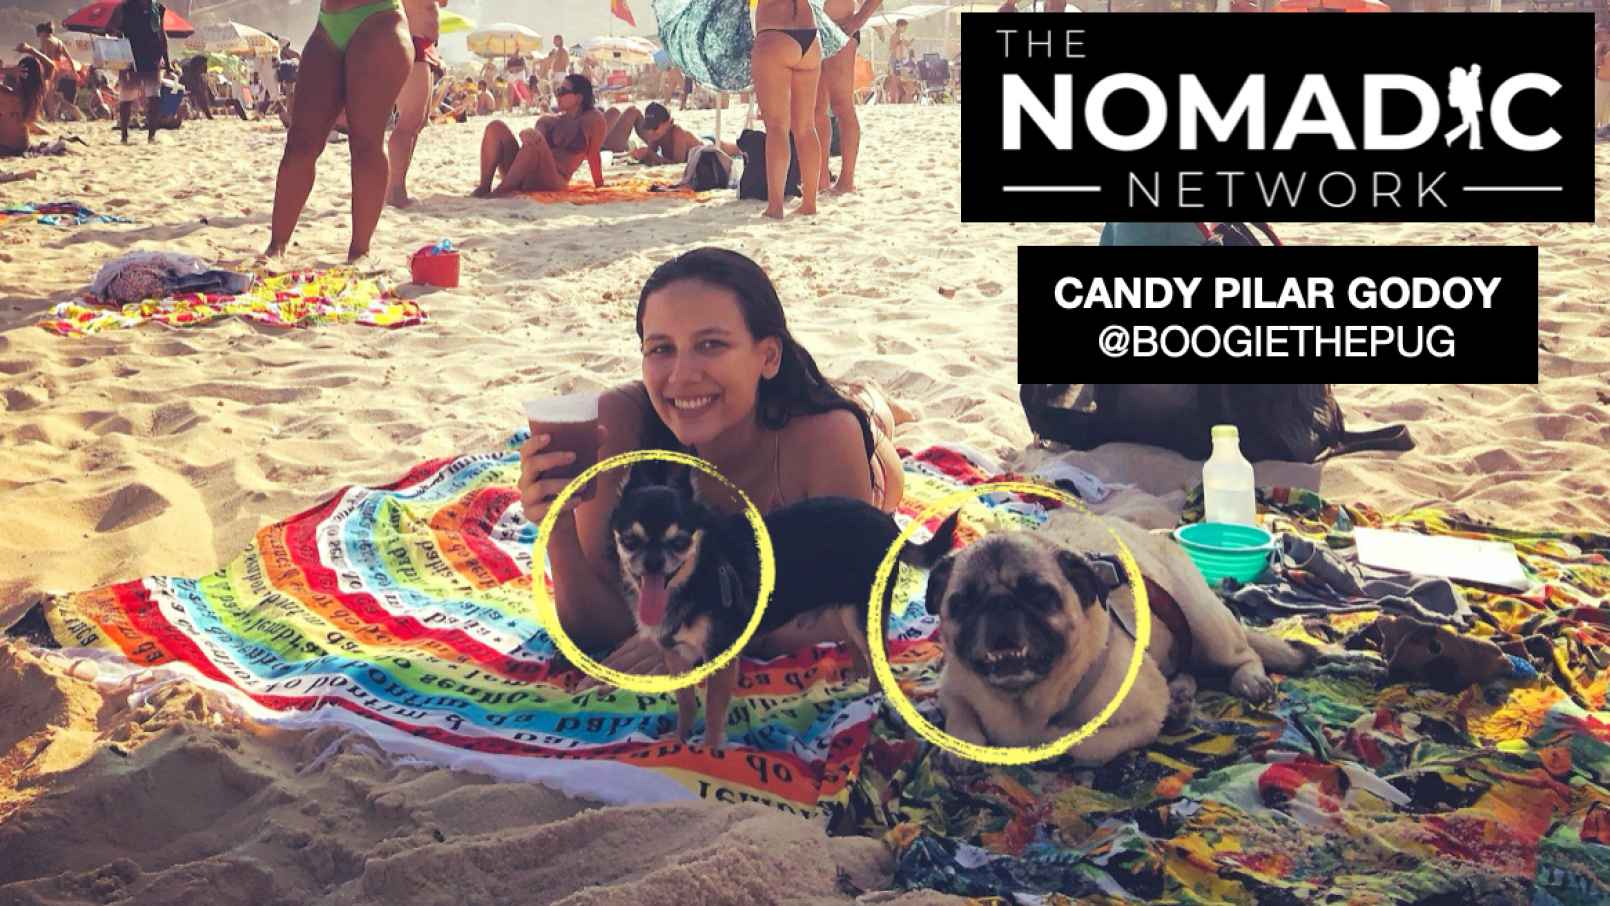 CAndy posing with her dogs at the beach